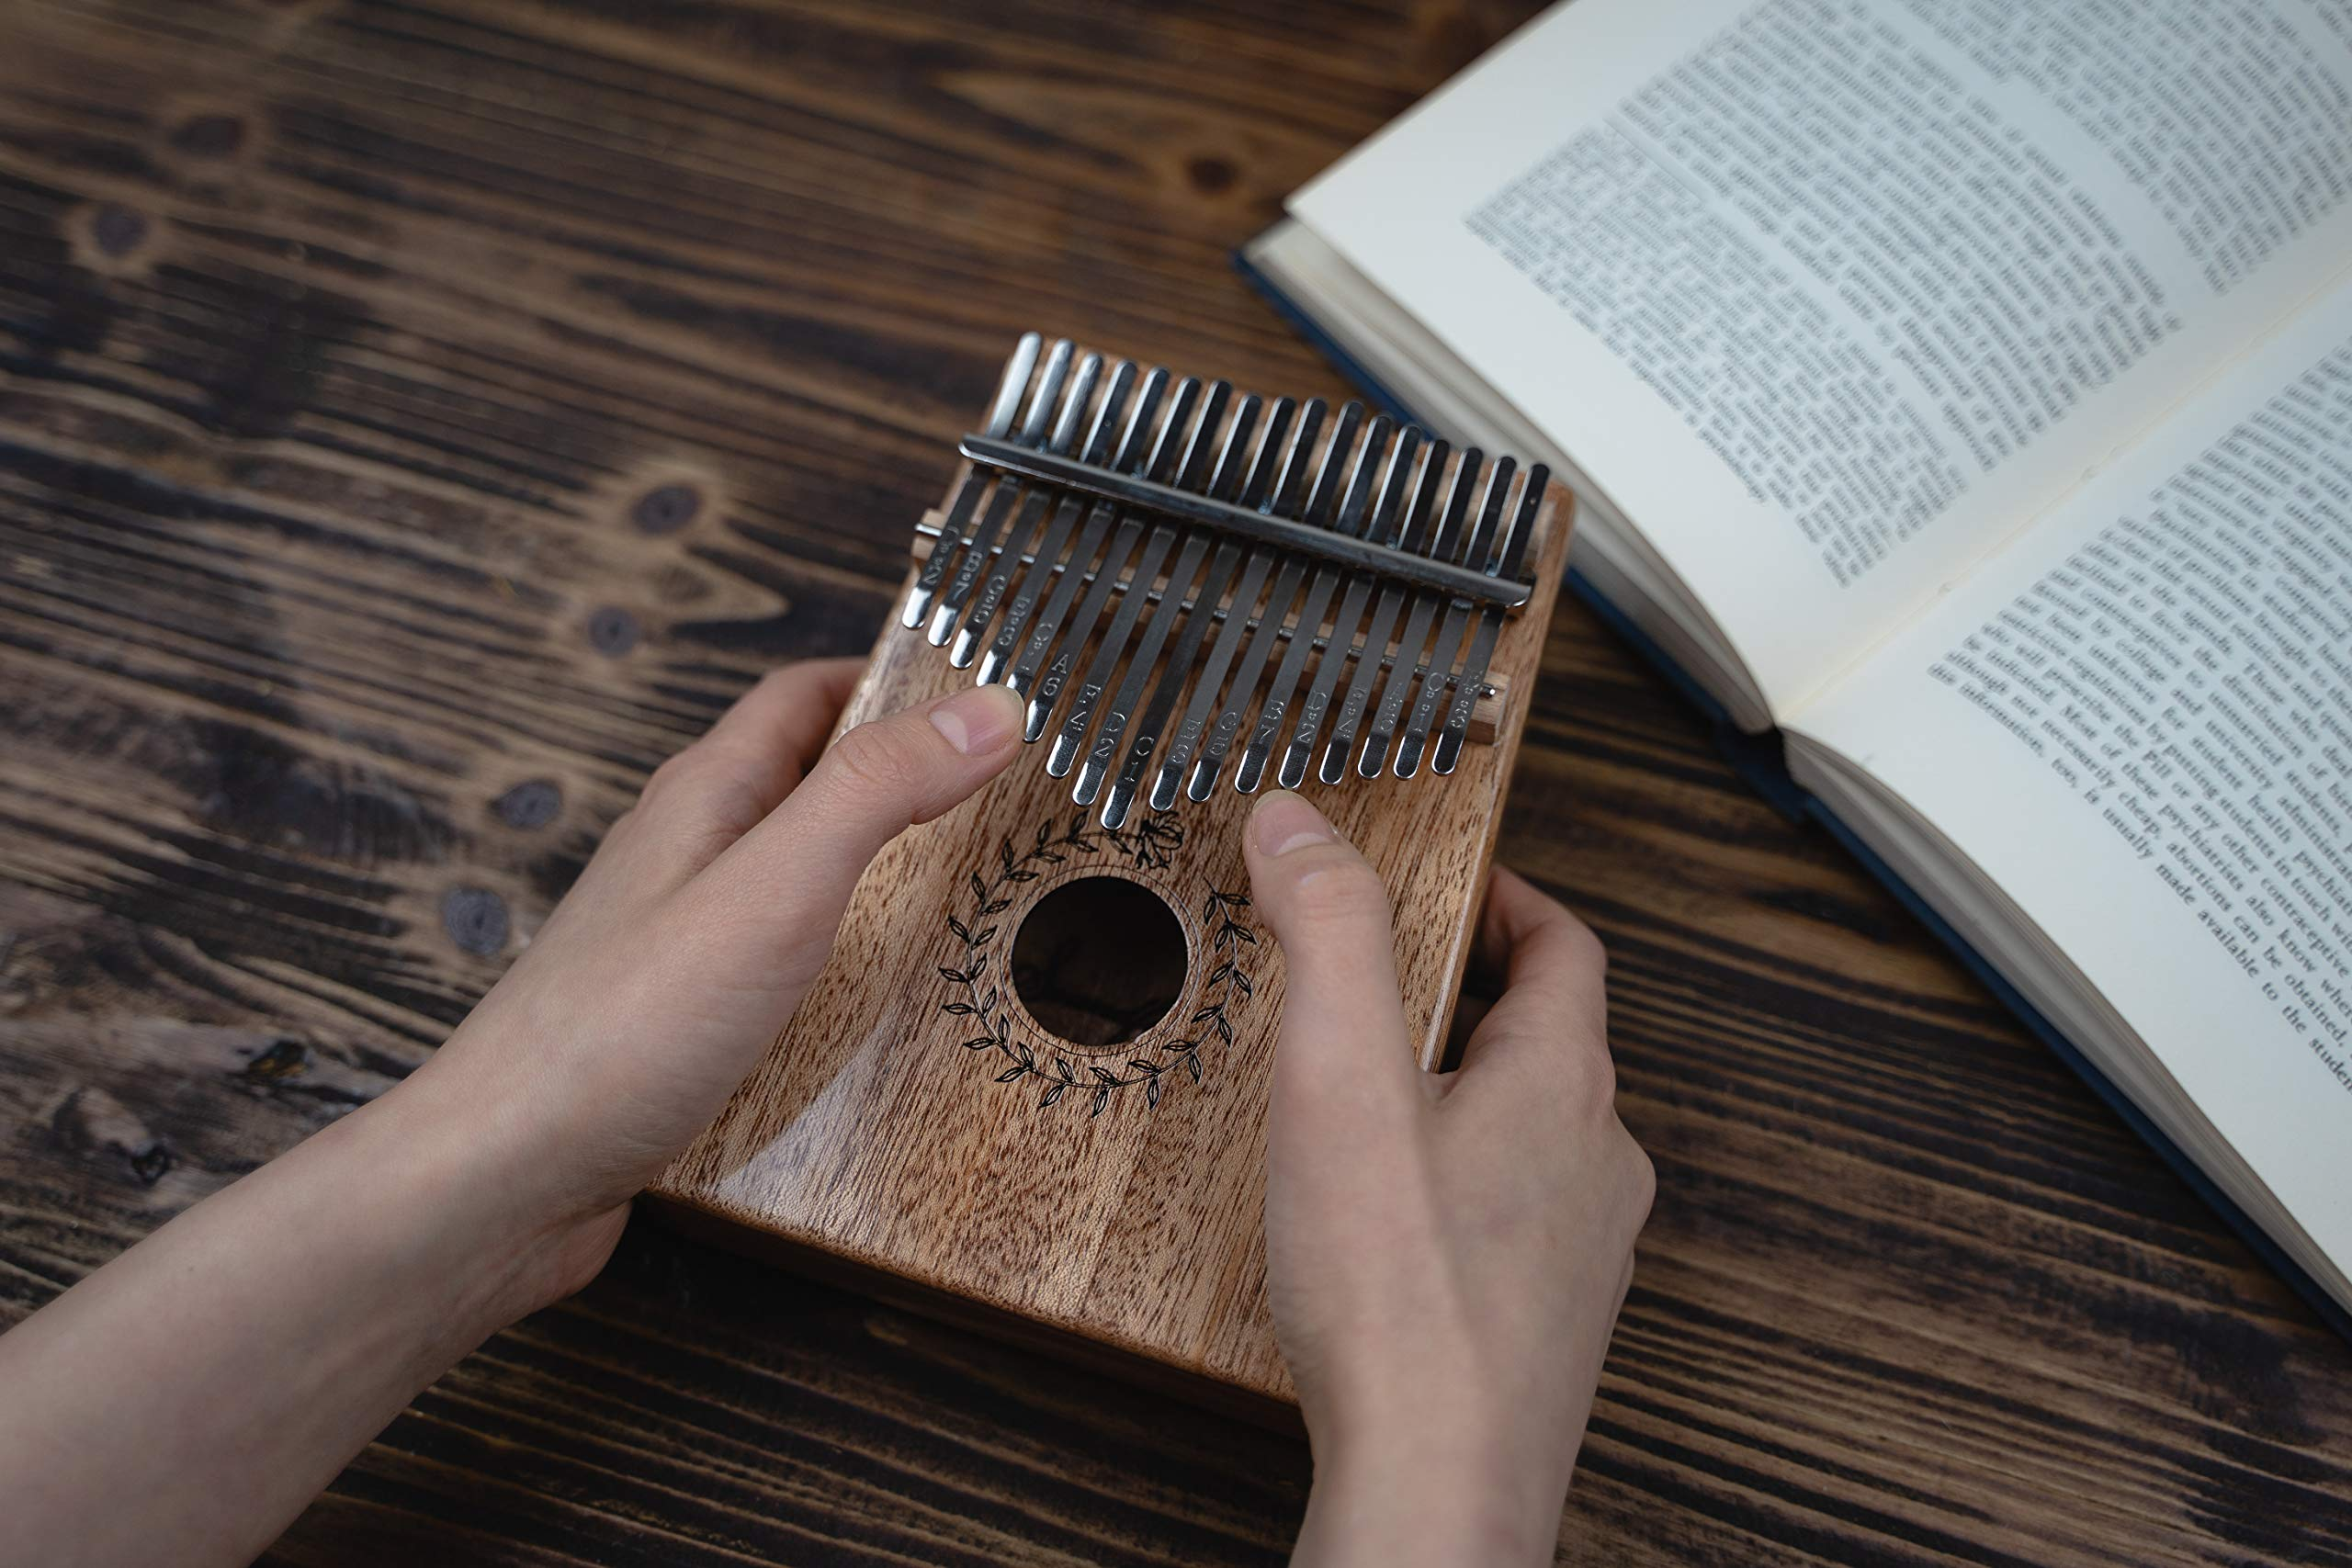 Soundful 17 Key Kalimba Thumb Piano, Solid Mahogany Body Finger Piano, Professional Mbira Musical Instrument with Tuning Hammer and Protective Case by Soundful (Image #6)